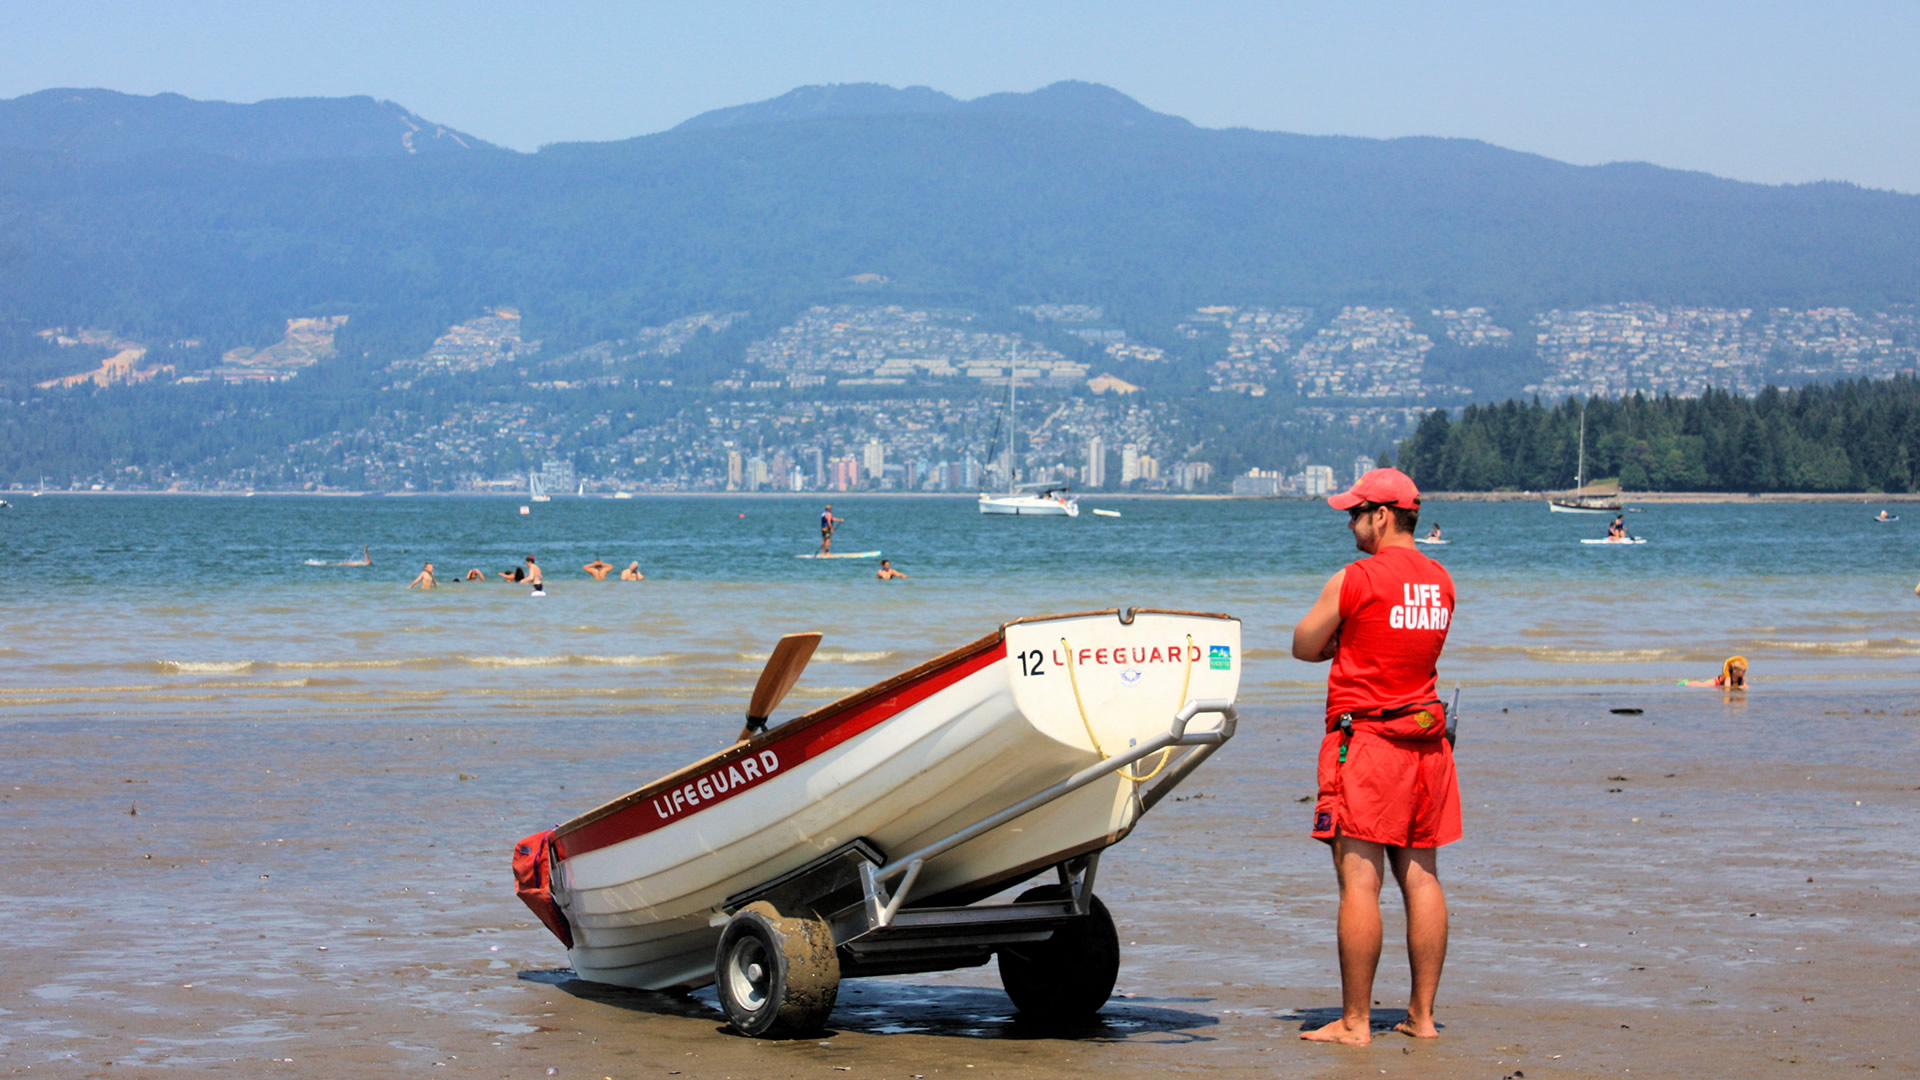 Westcoast-Lifeguard-Rowboat-credit-Gerry-Bates-Photography-Whitehall-Rowing-and-Sail-9a